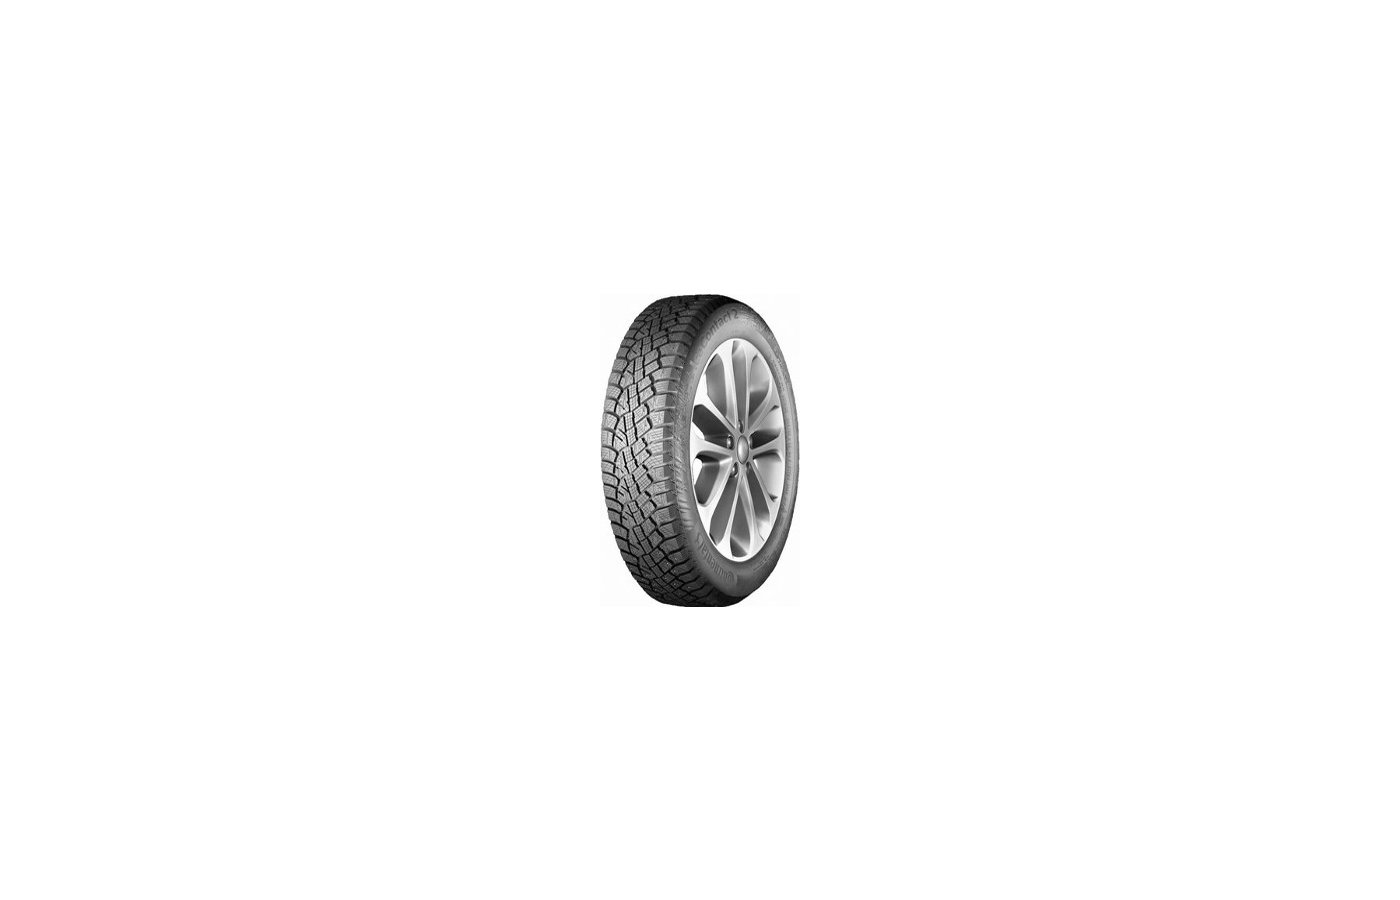 Шина Continental ContiIceContact 2 205/55 R16 TL 94T XL шип